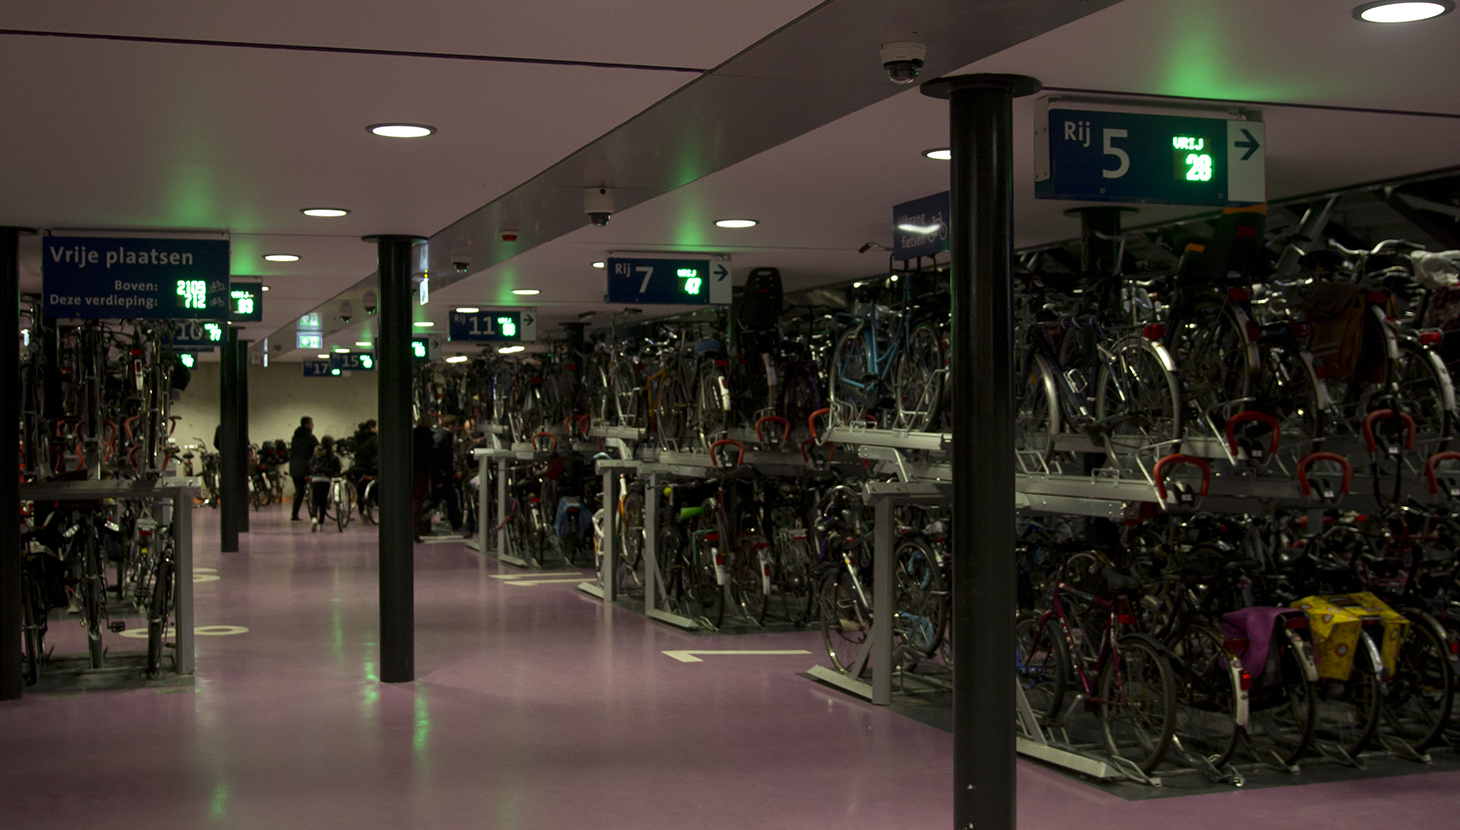 Utrecht station bike parking. ph. Fiestberaad